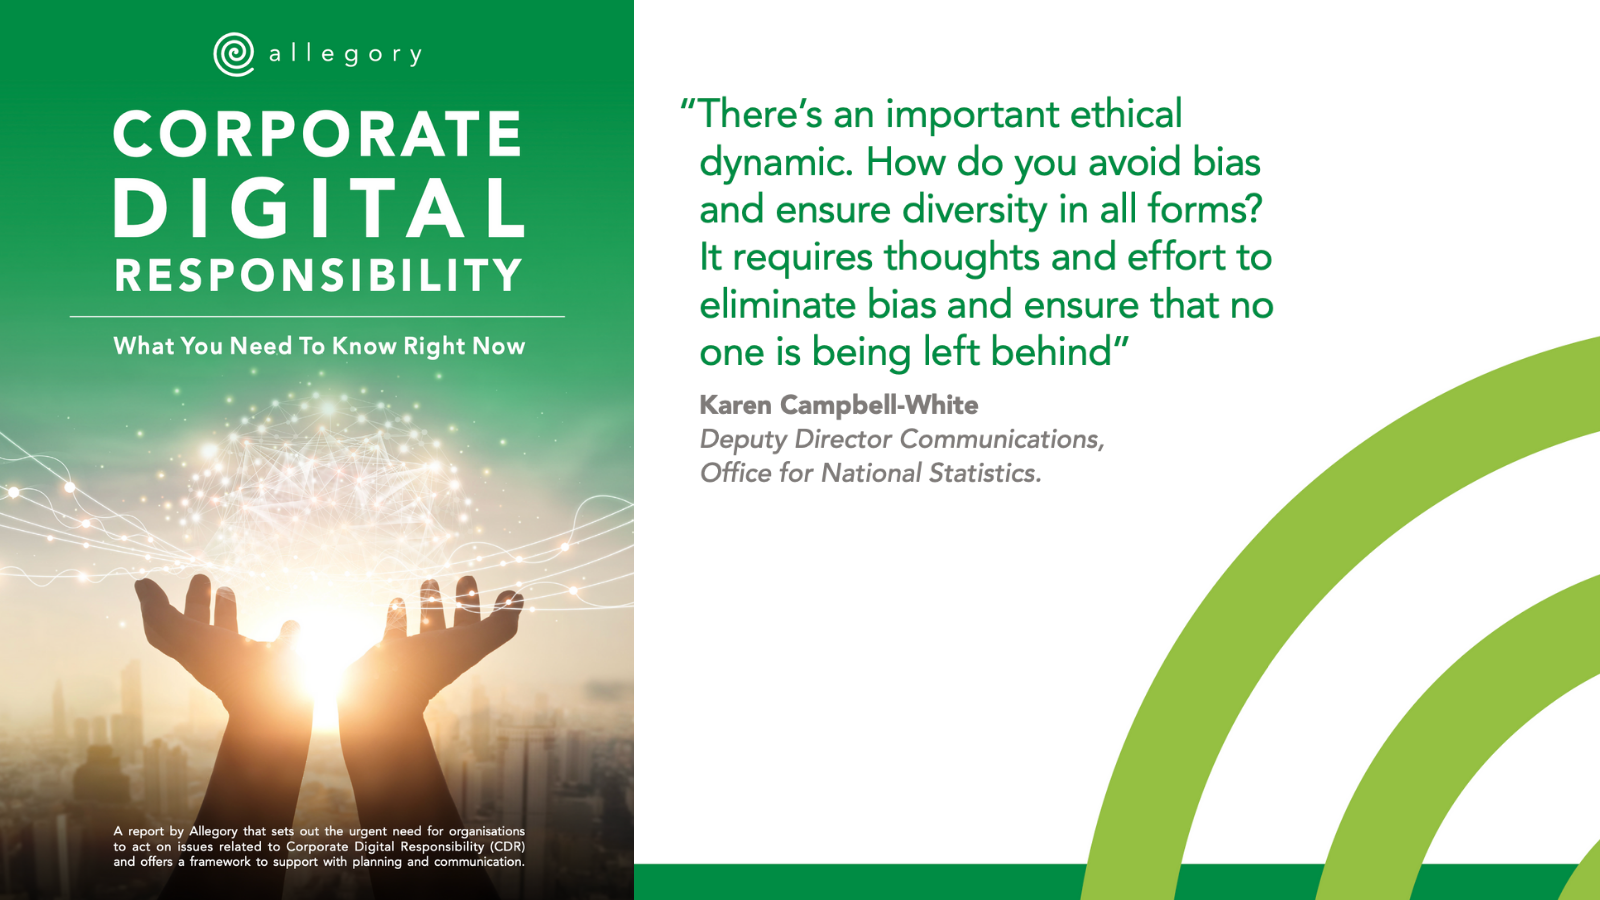 """There's an important ethical dynamic. How do you avoid bias and ensure diversity in all forms? It requires thoughts and effort to eliminate bias and ensure that no one is being left behind"""""""